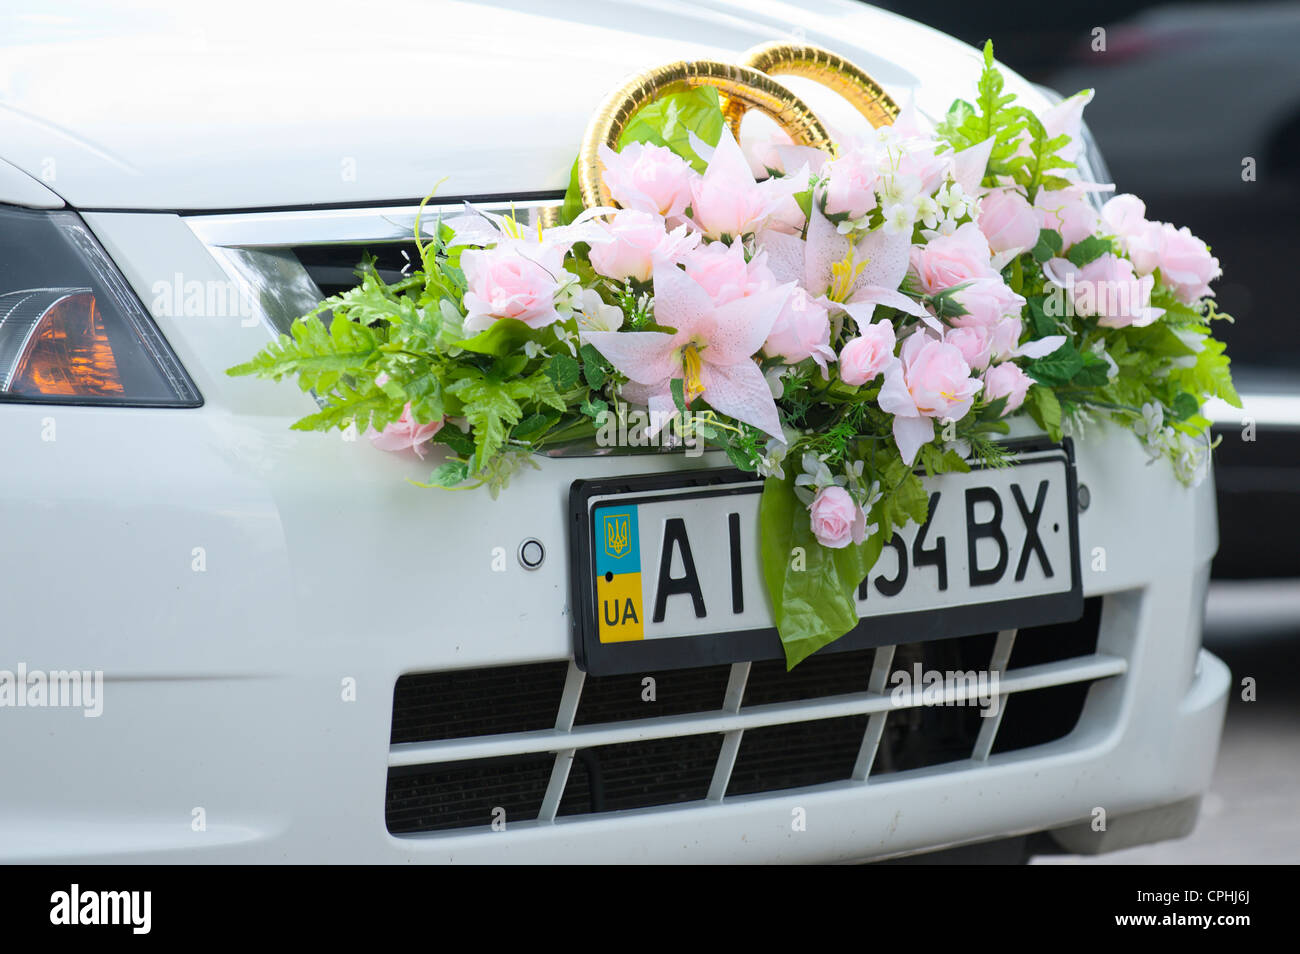 Car Decoration Weding Wedding Car Decoration Stock Photos Wedding Car Decoration Stock